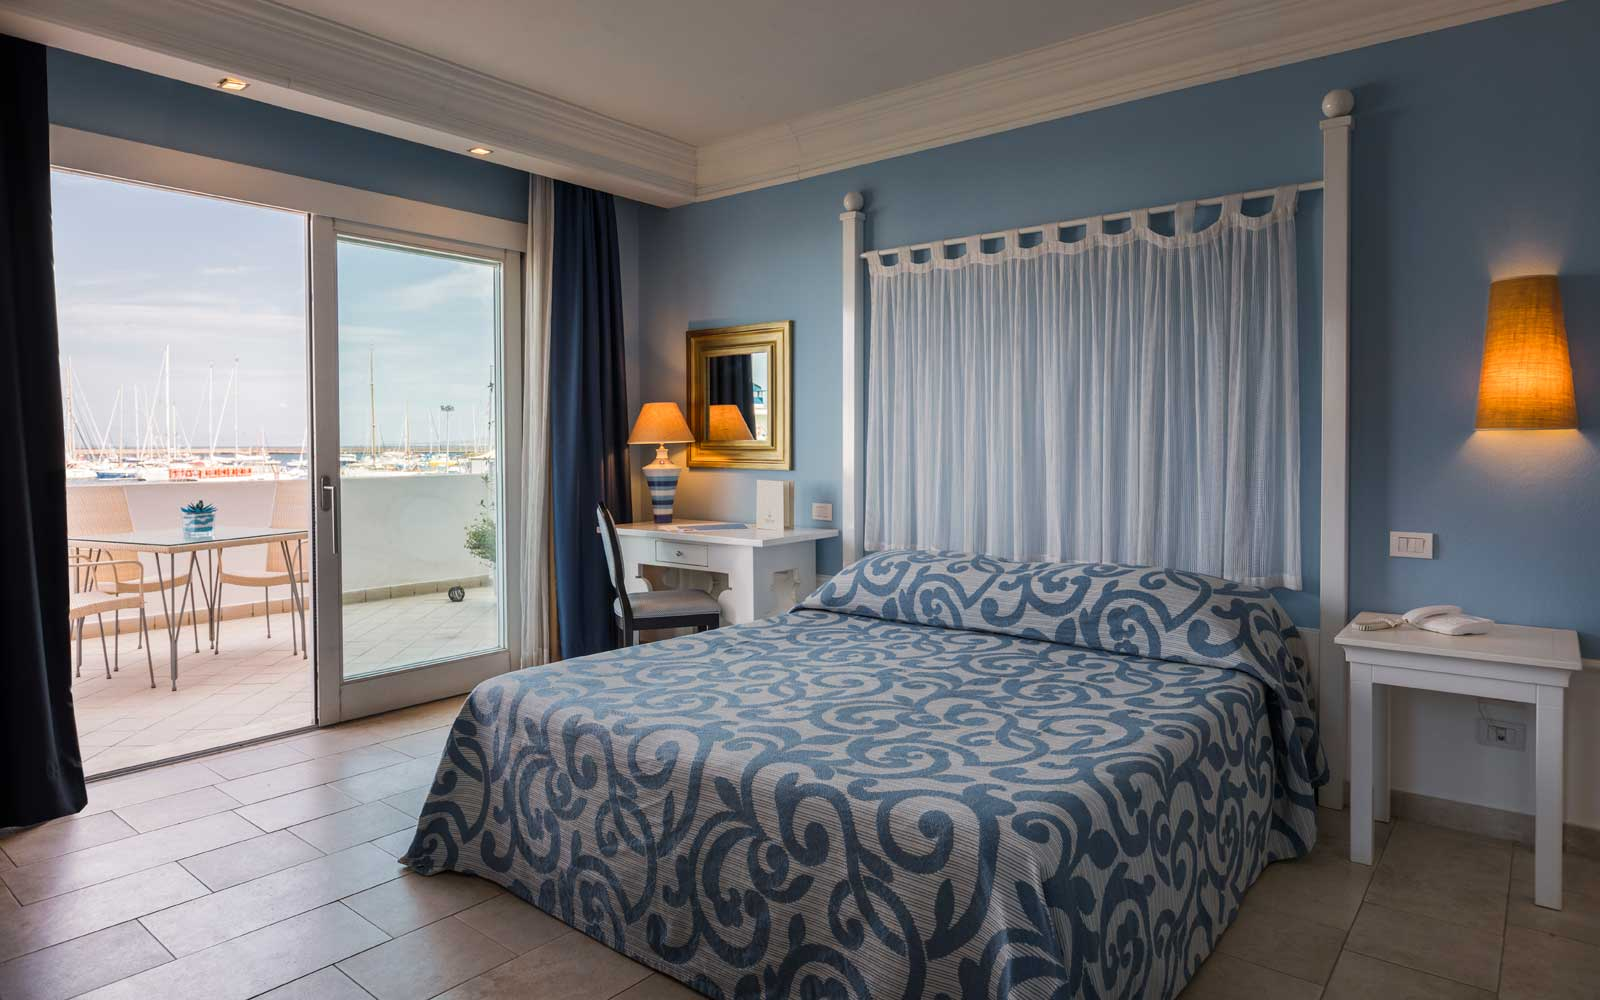 Deluxe Room with Sea View at Hotel Riviera